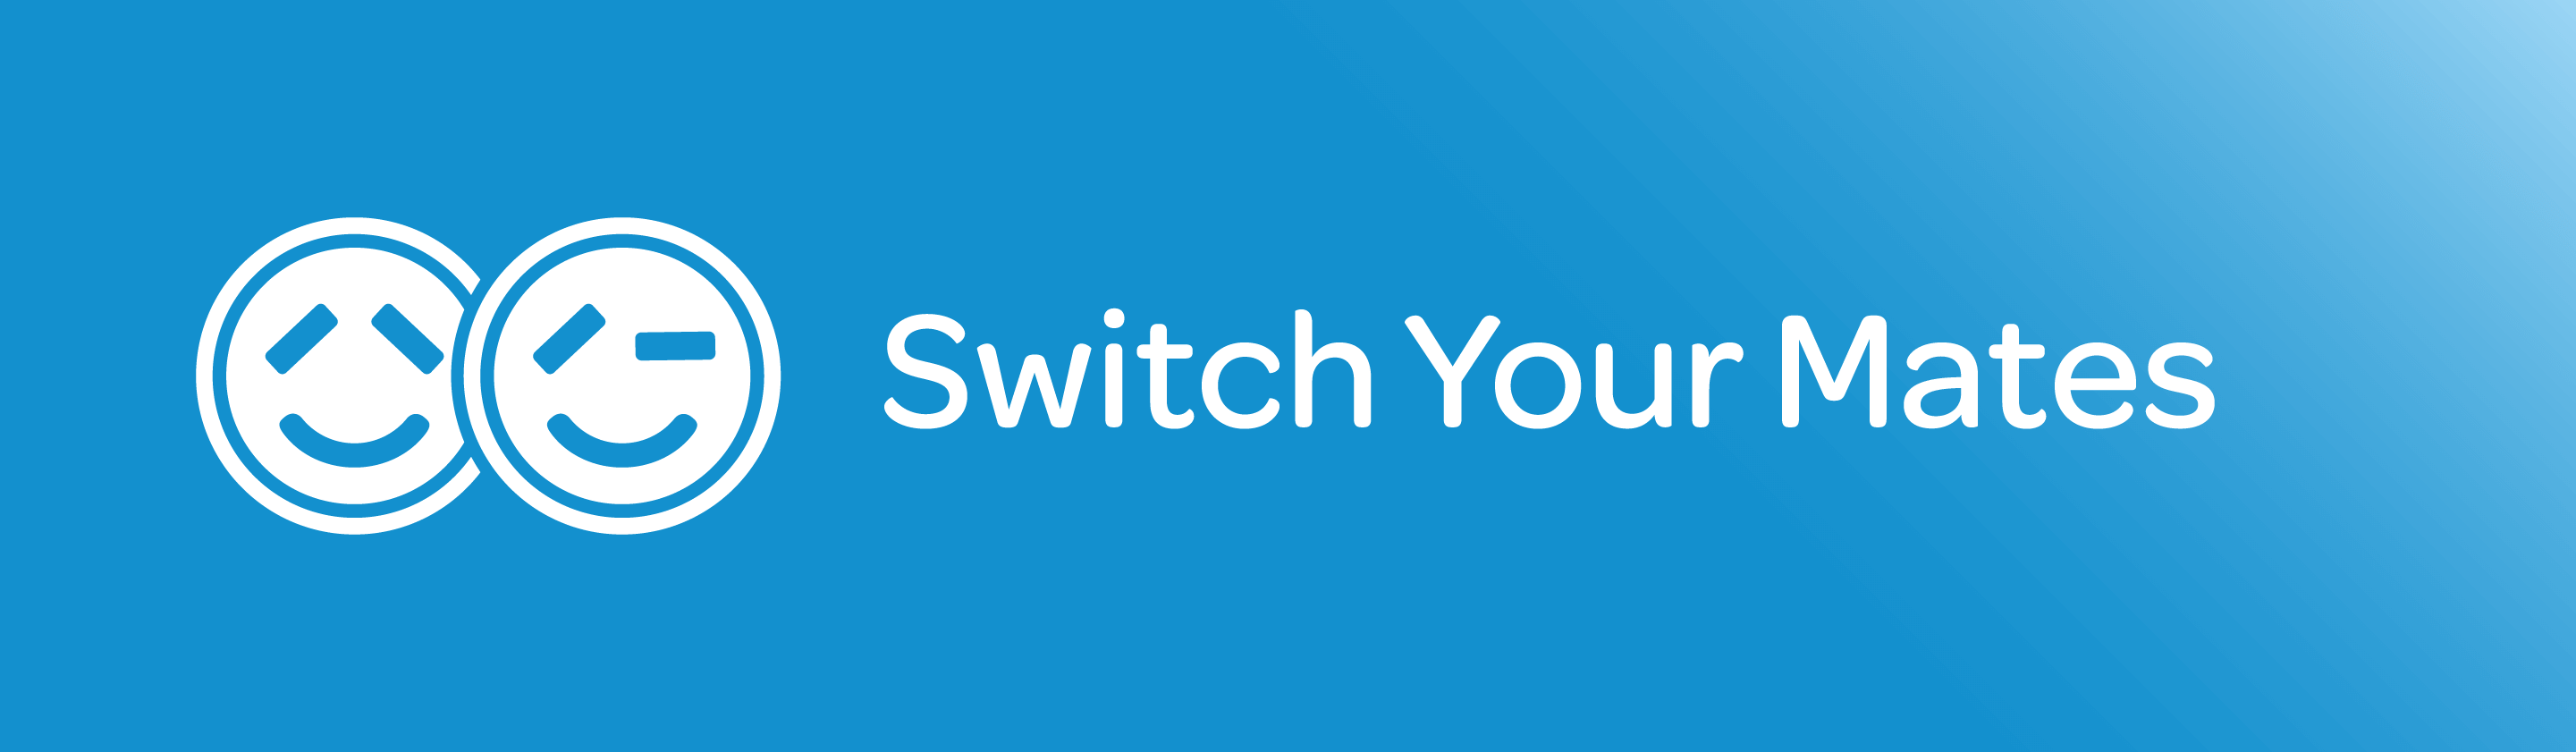 """""""Switch Your Mates"""" text on a blue background"""